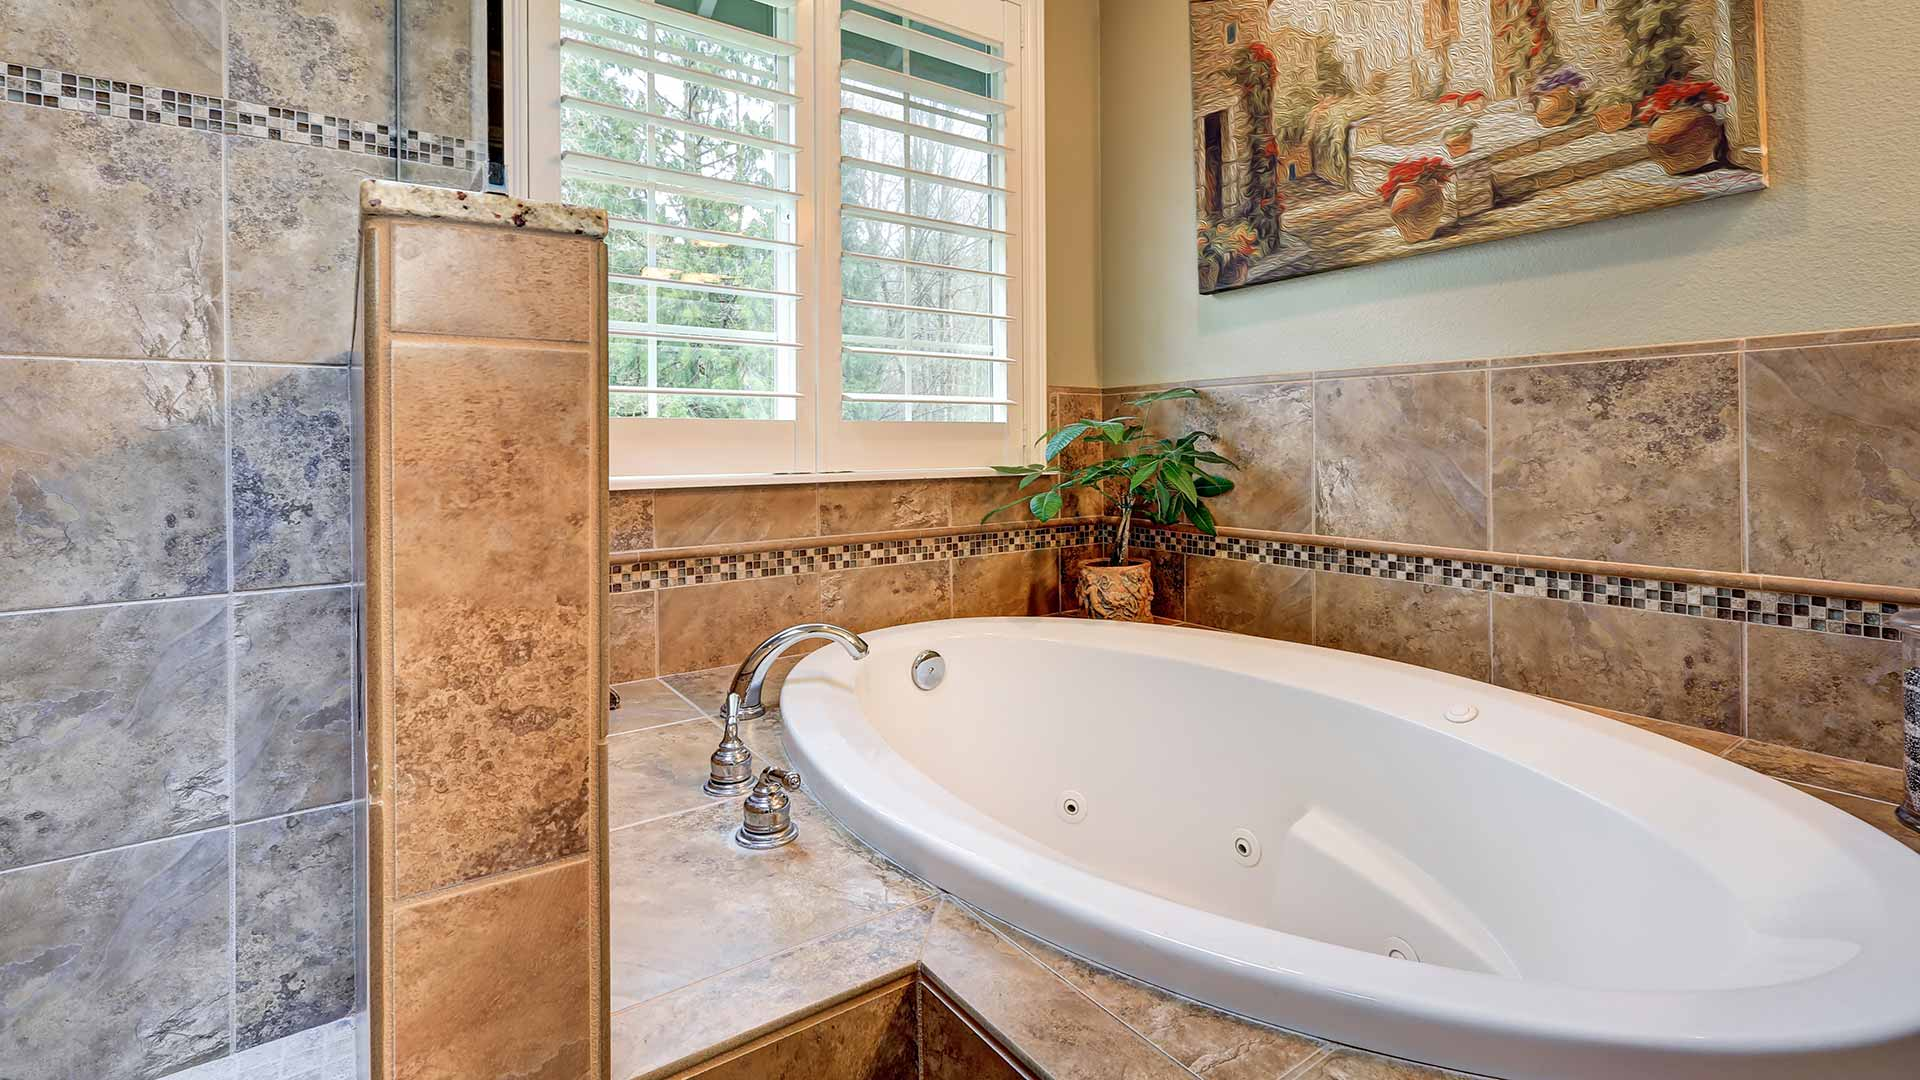 6 Common Mistakes When Remodeling the Bathroom